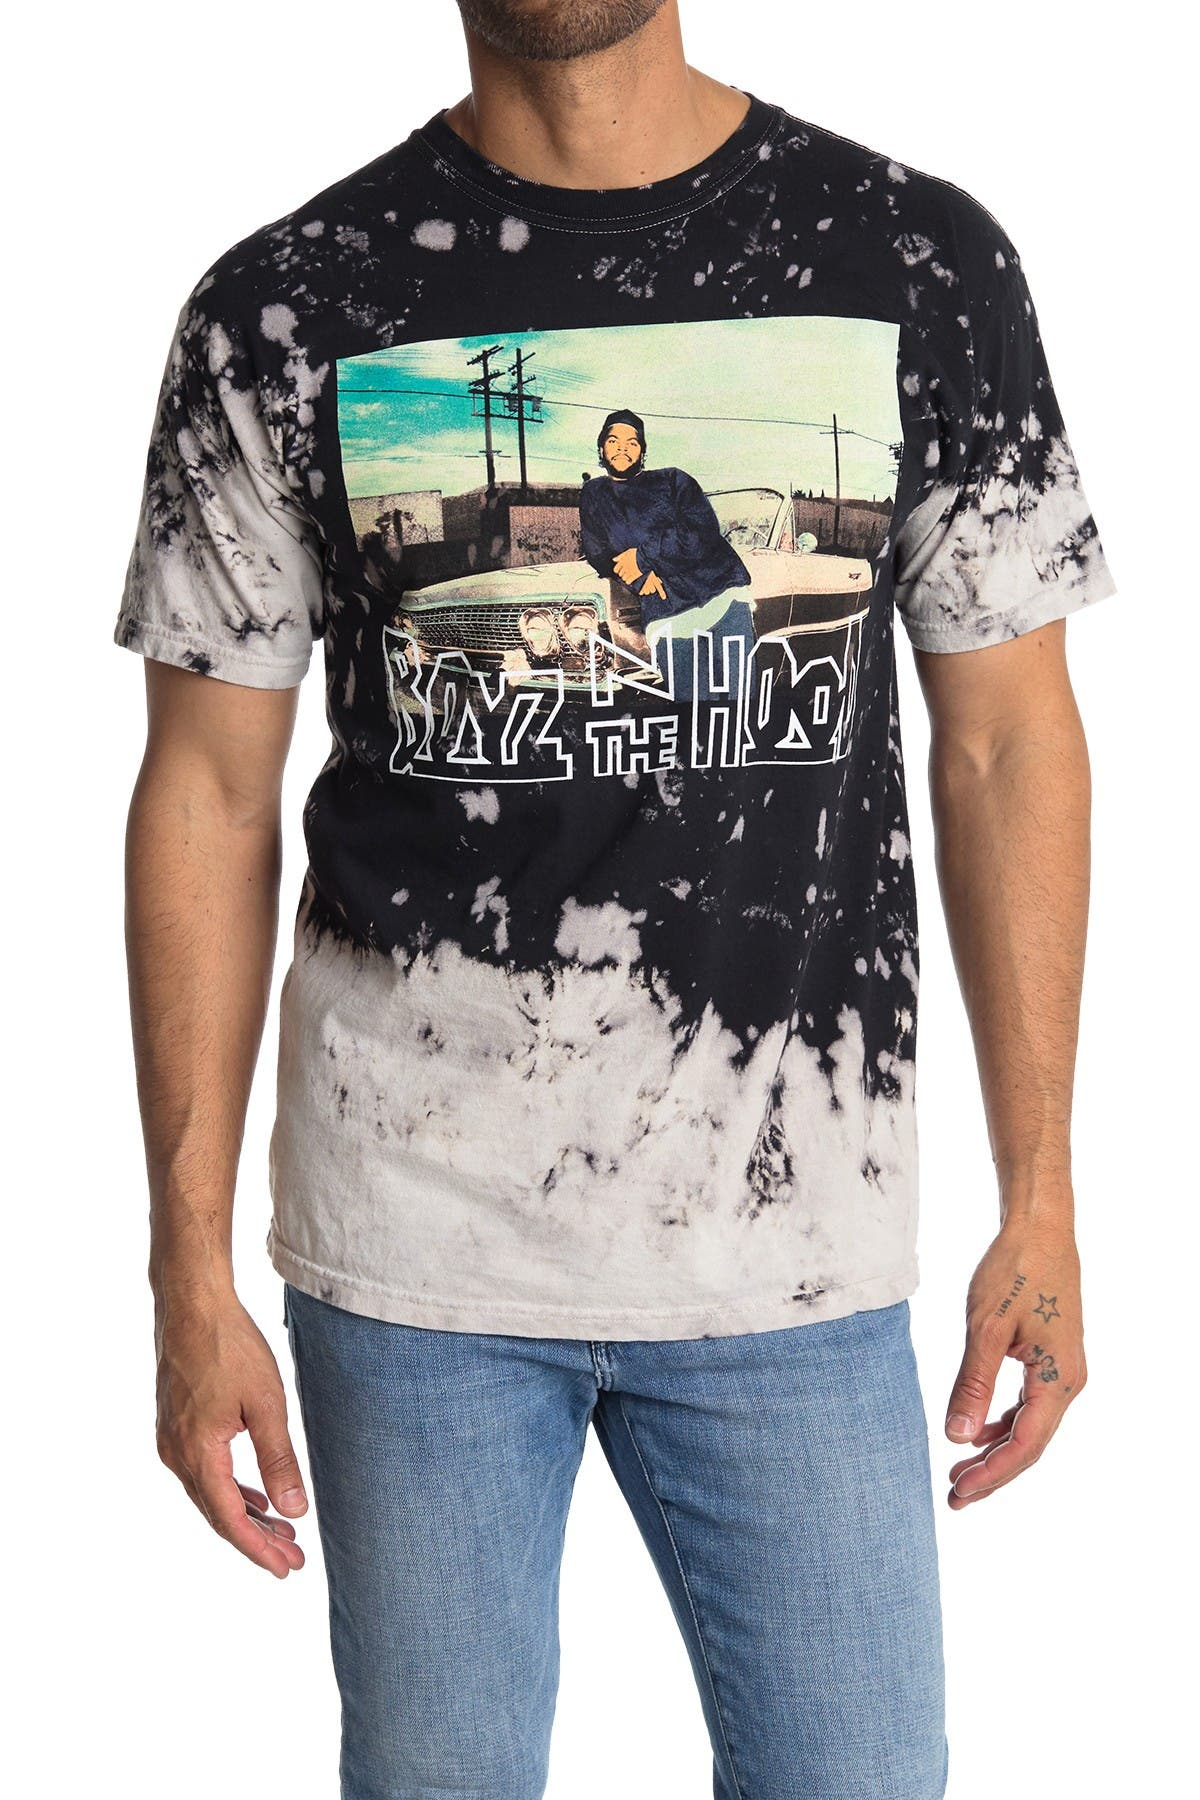 Image of Philcos Boyz n the Hood Car Lean Graphic T-Shirt